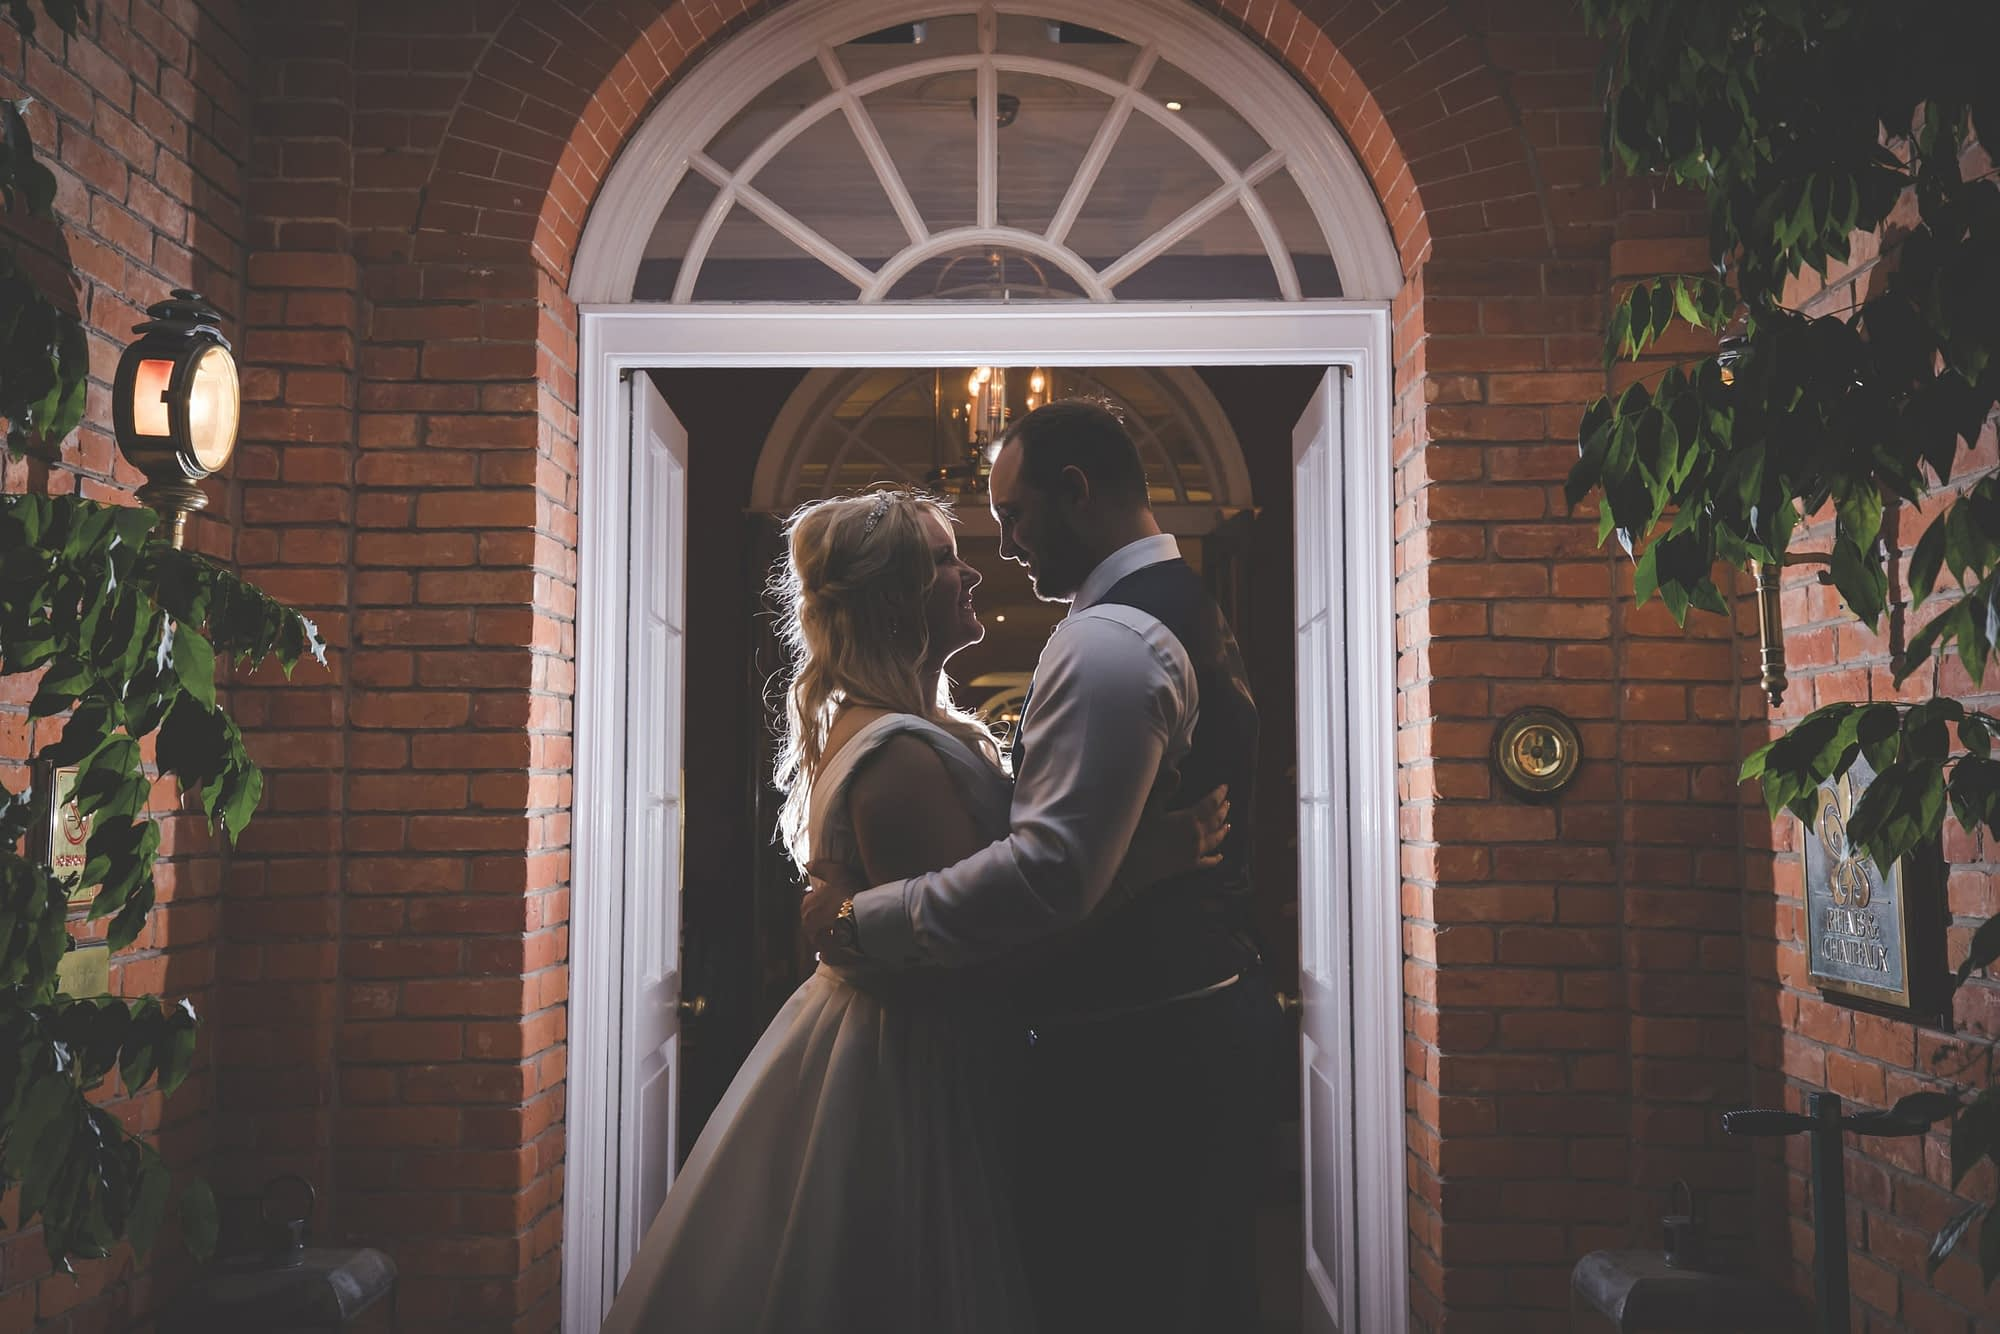 couple standing together in a doorway